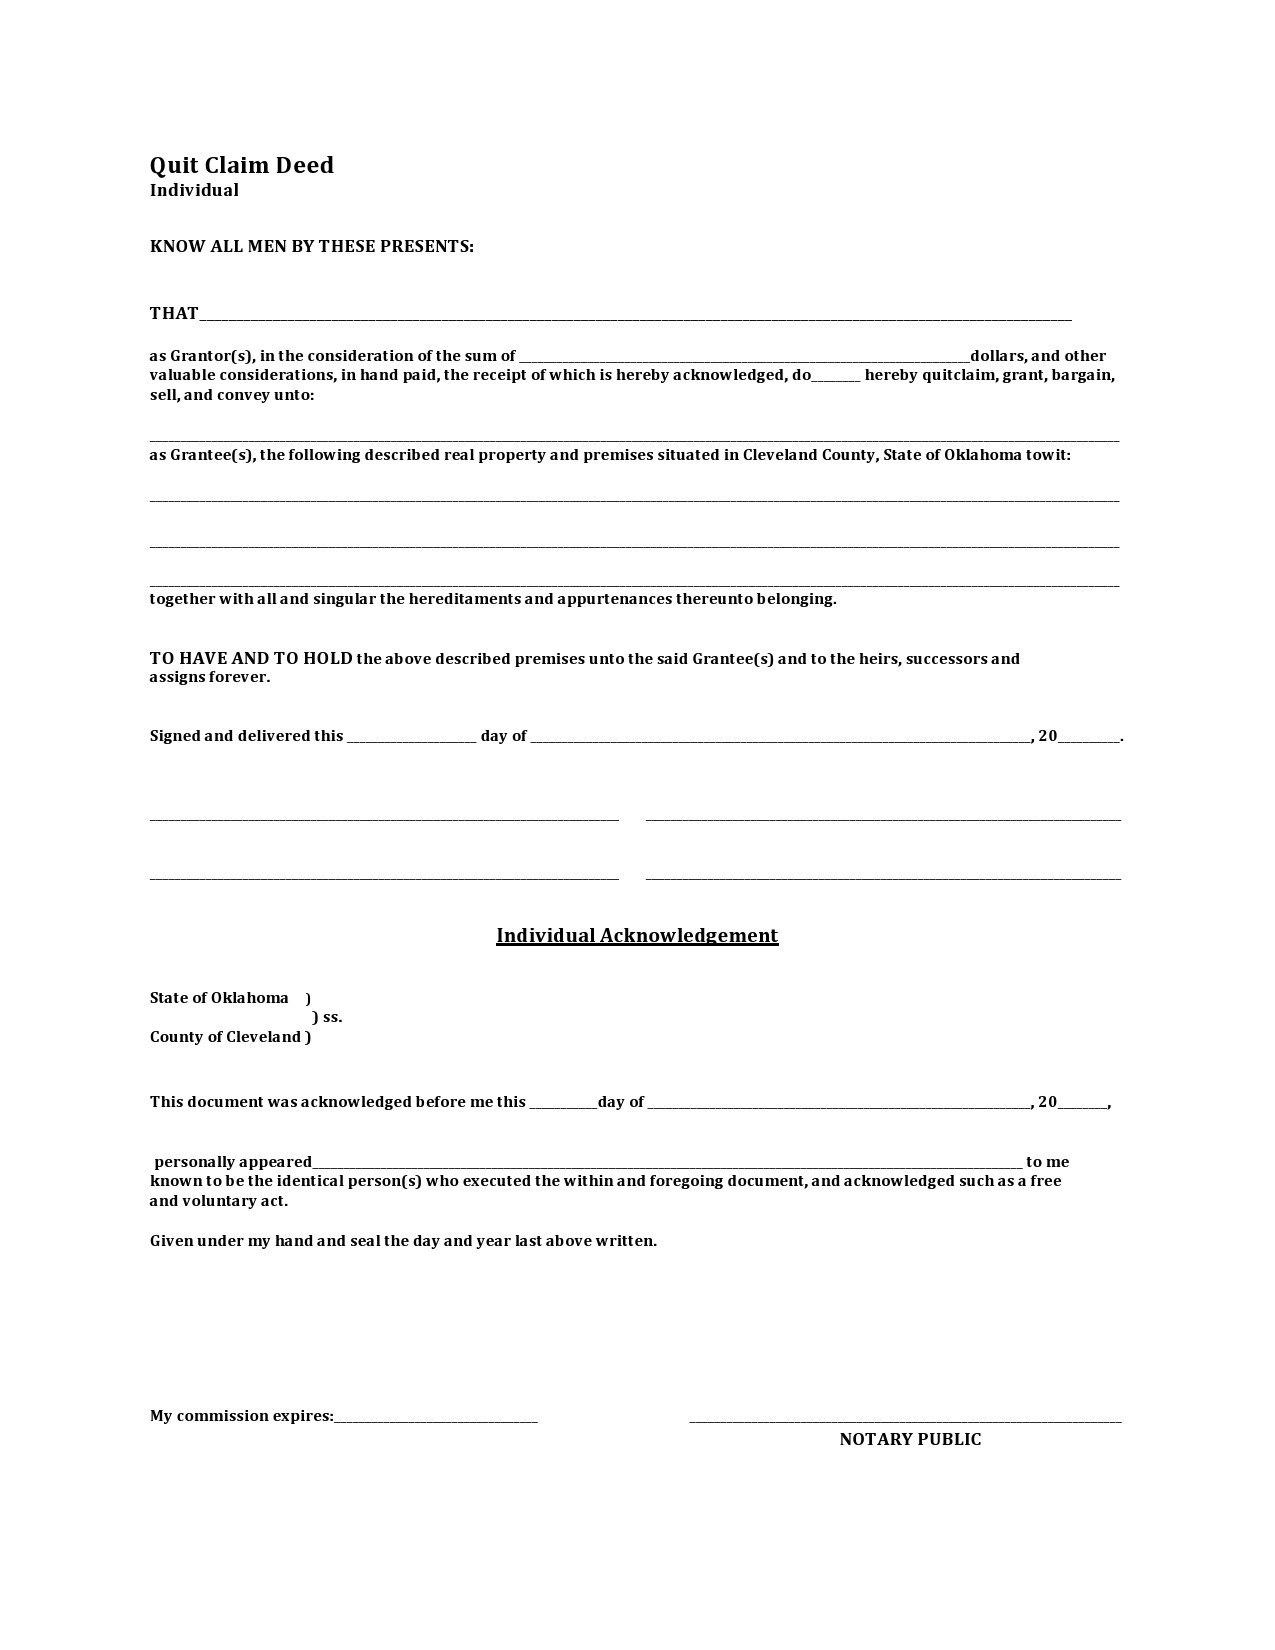 Free quit claim deed form 04